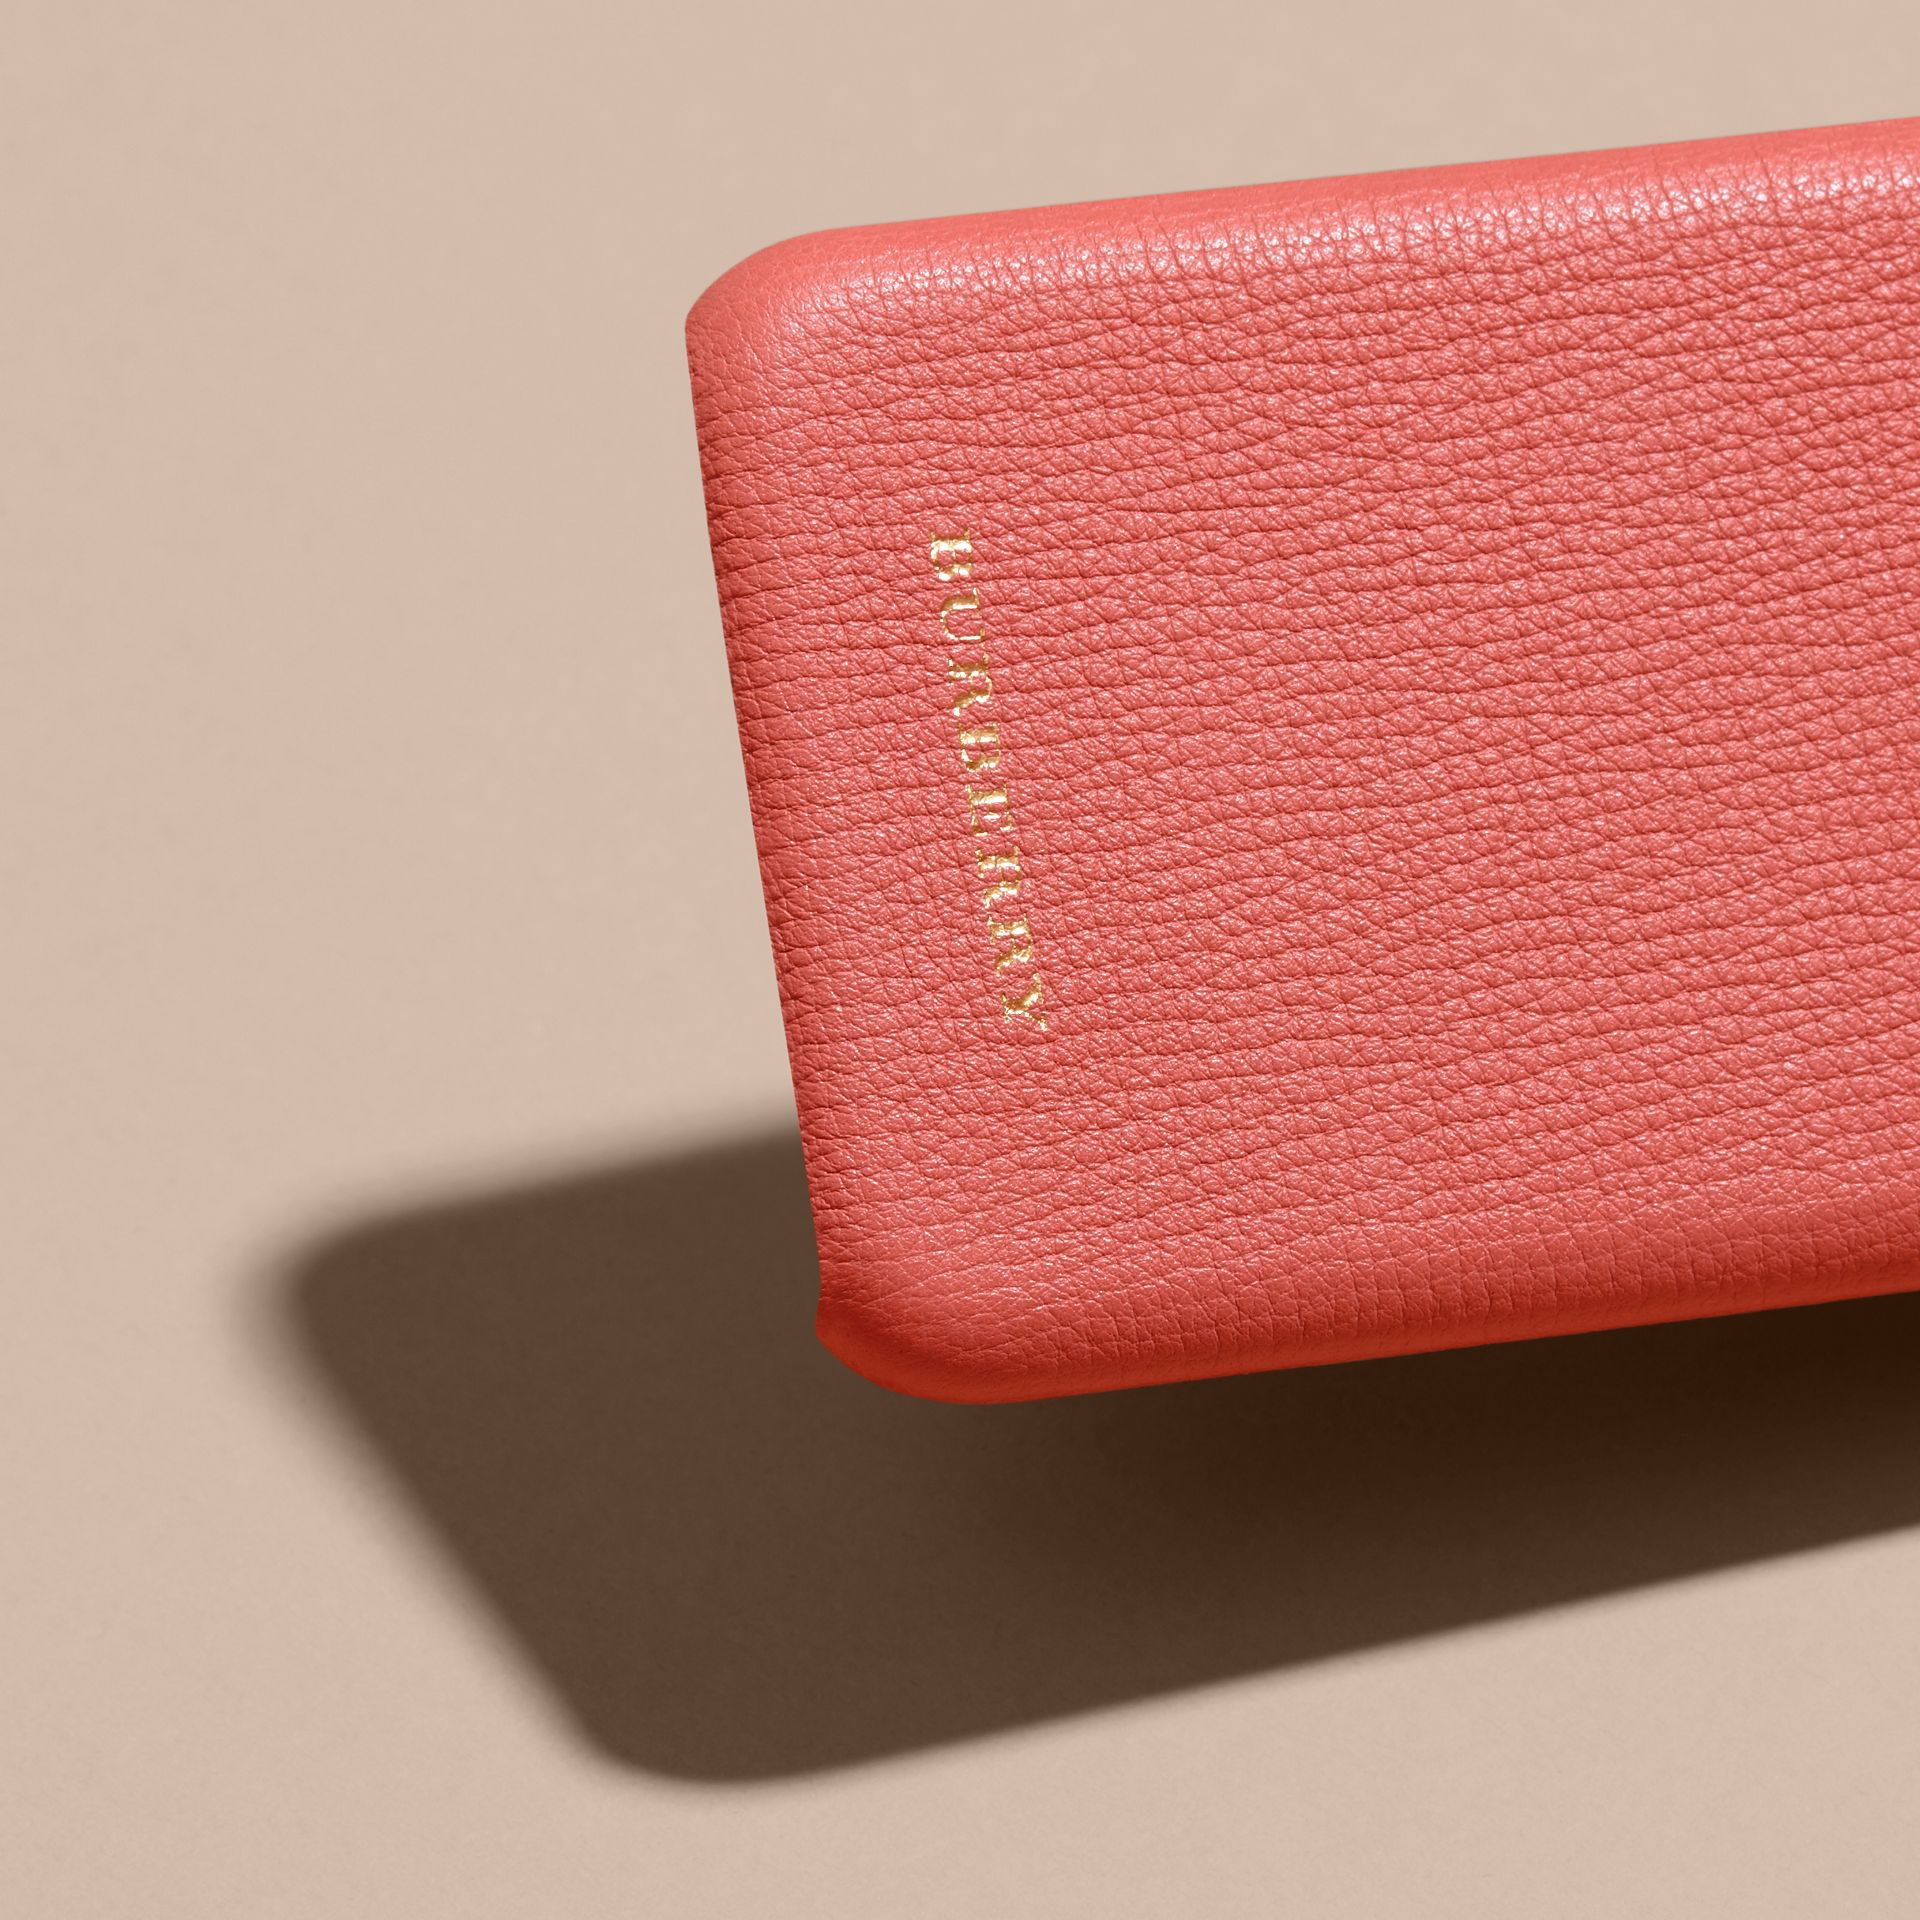 Grainy Leather iPhone 6 Case in Copper Pink - Women | Burberry Australia - gallery image 2